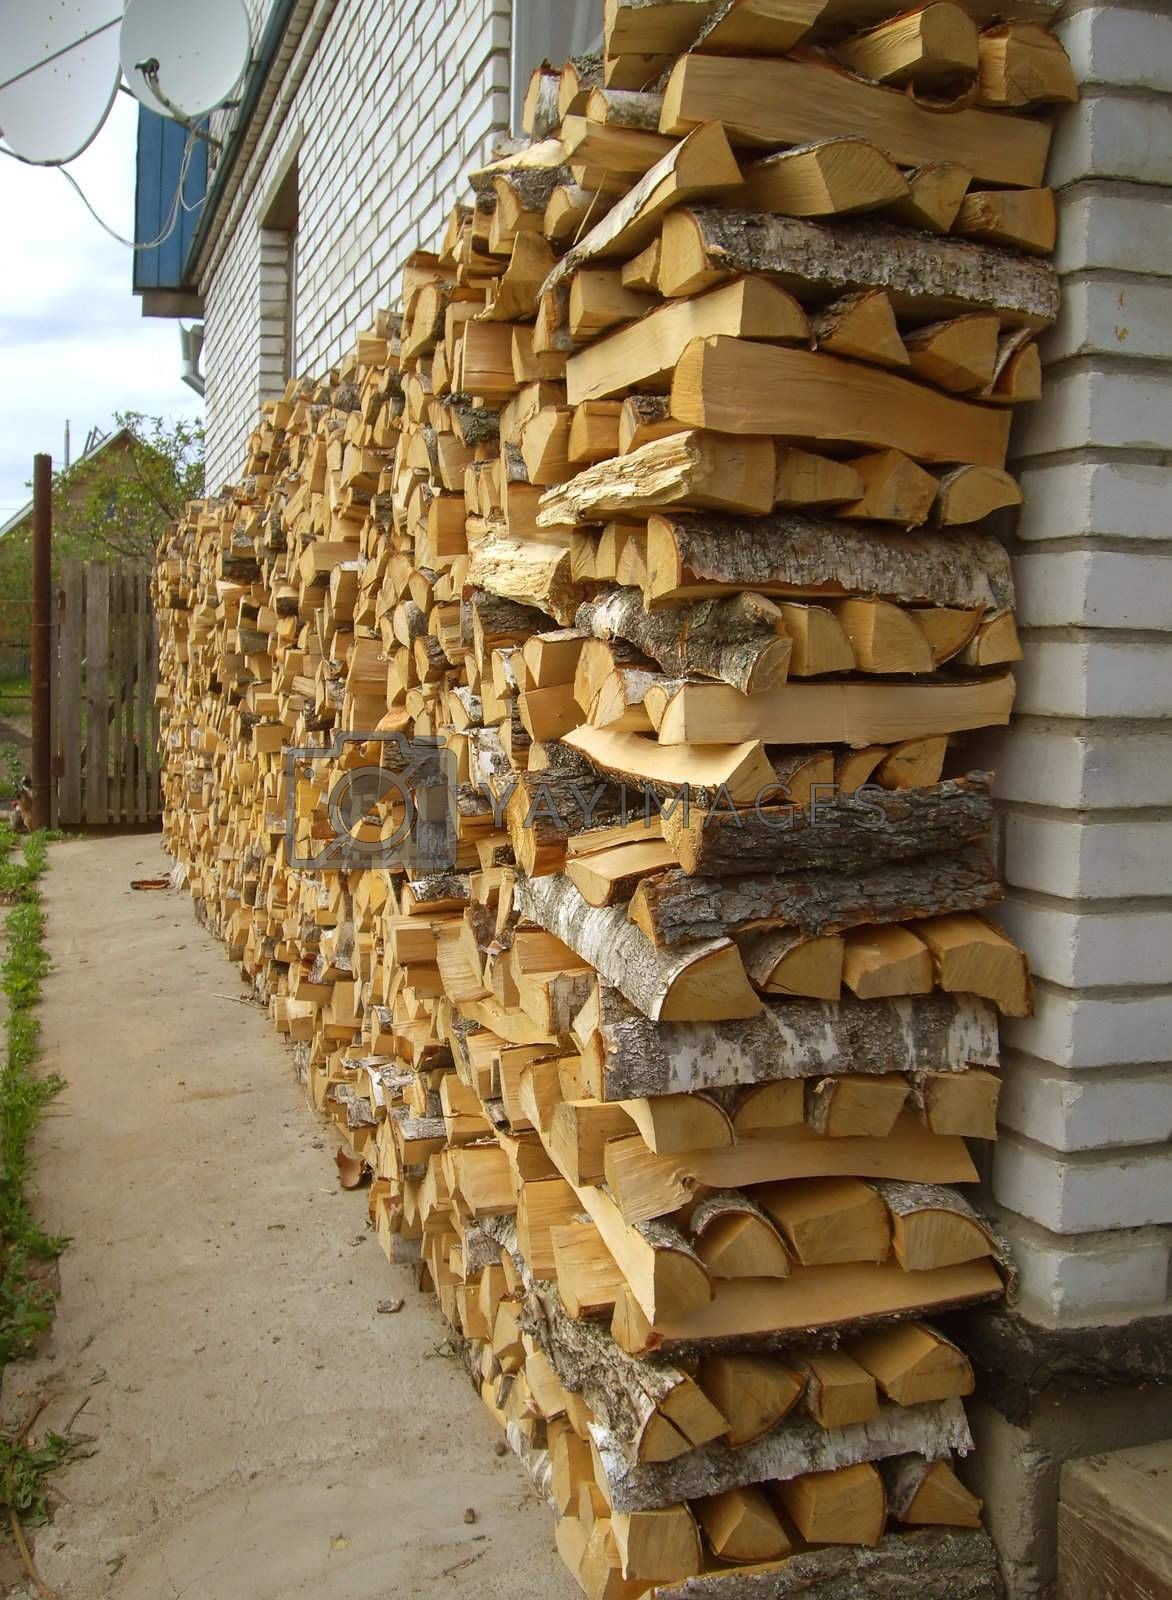 A woodpile of birch fire wood, preparation of fuel for the winter.